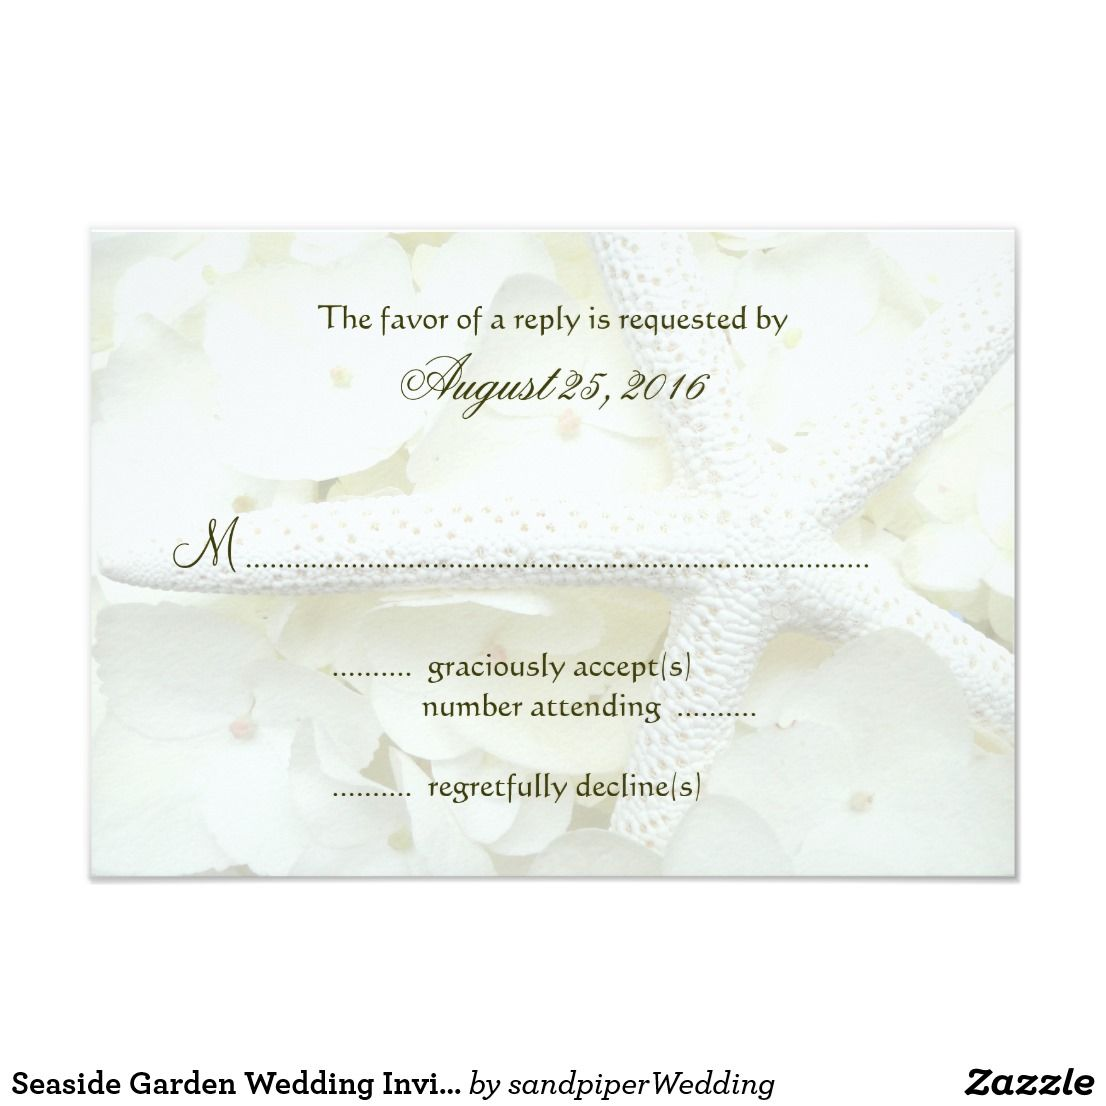 Seaside Garden Wedding Invitation Reply Cards | Beach Wedding ...